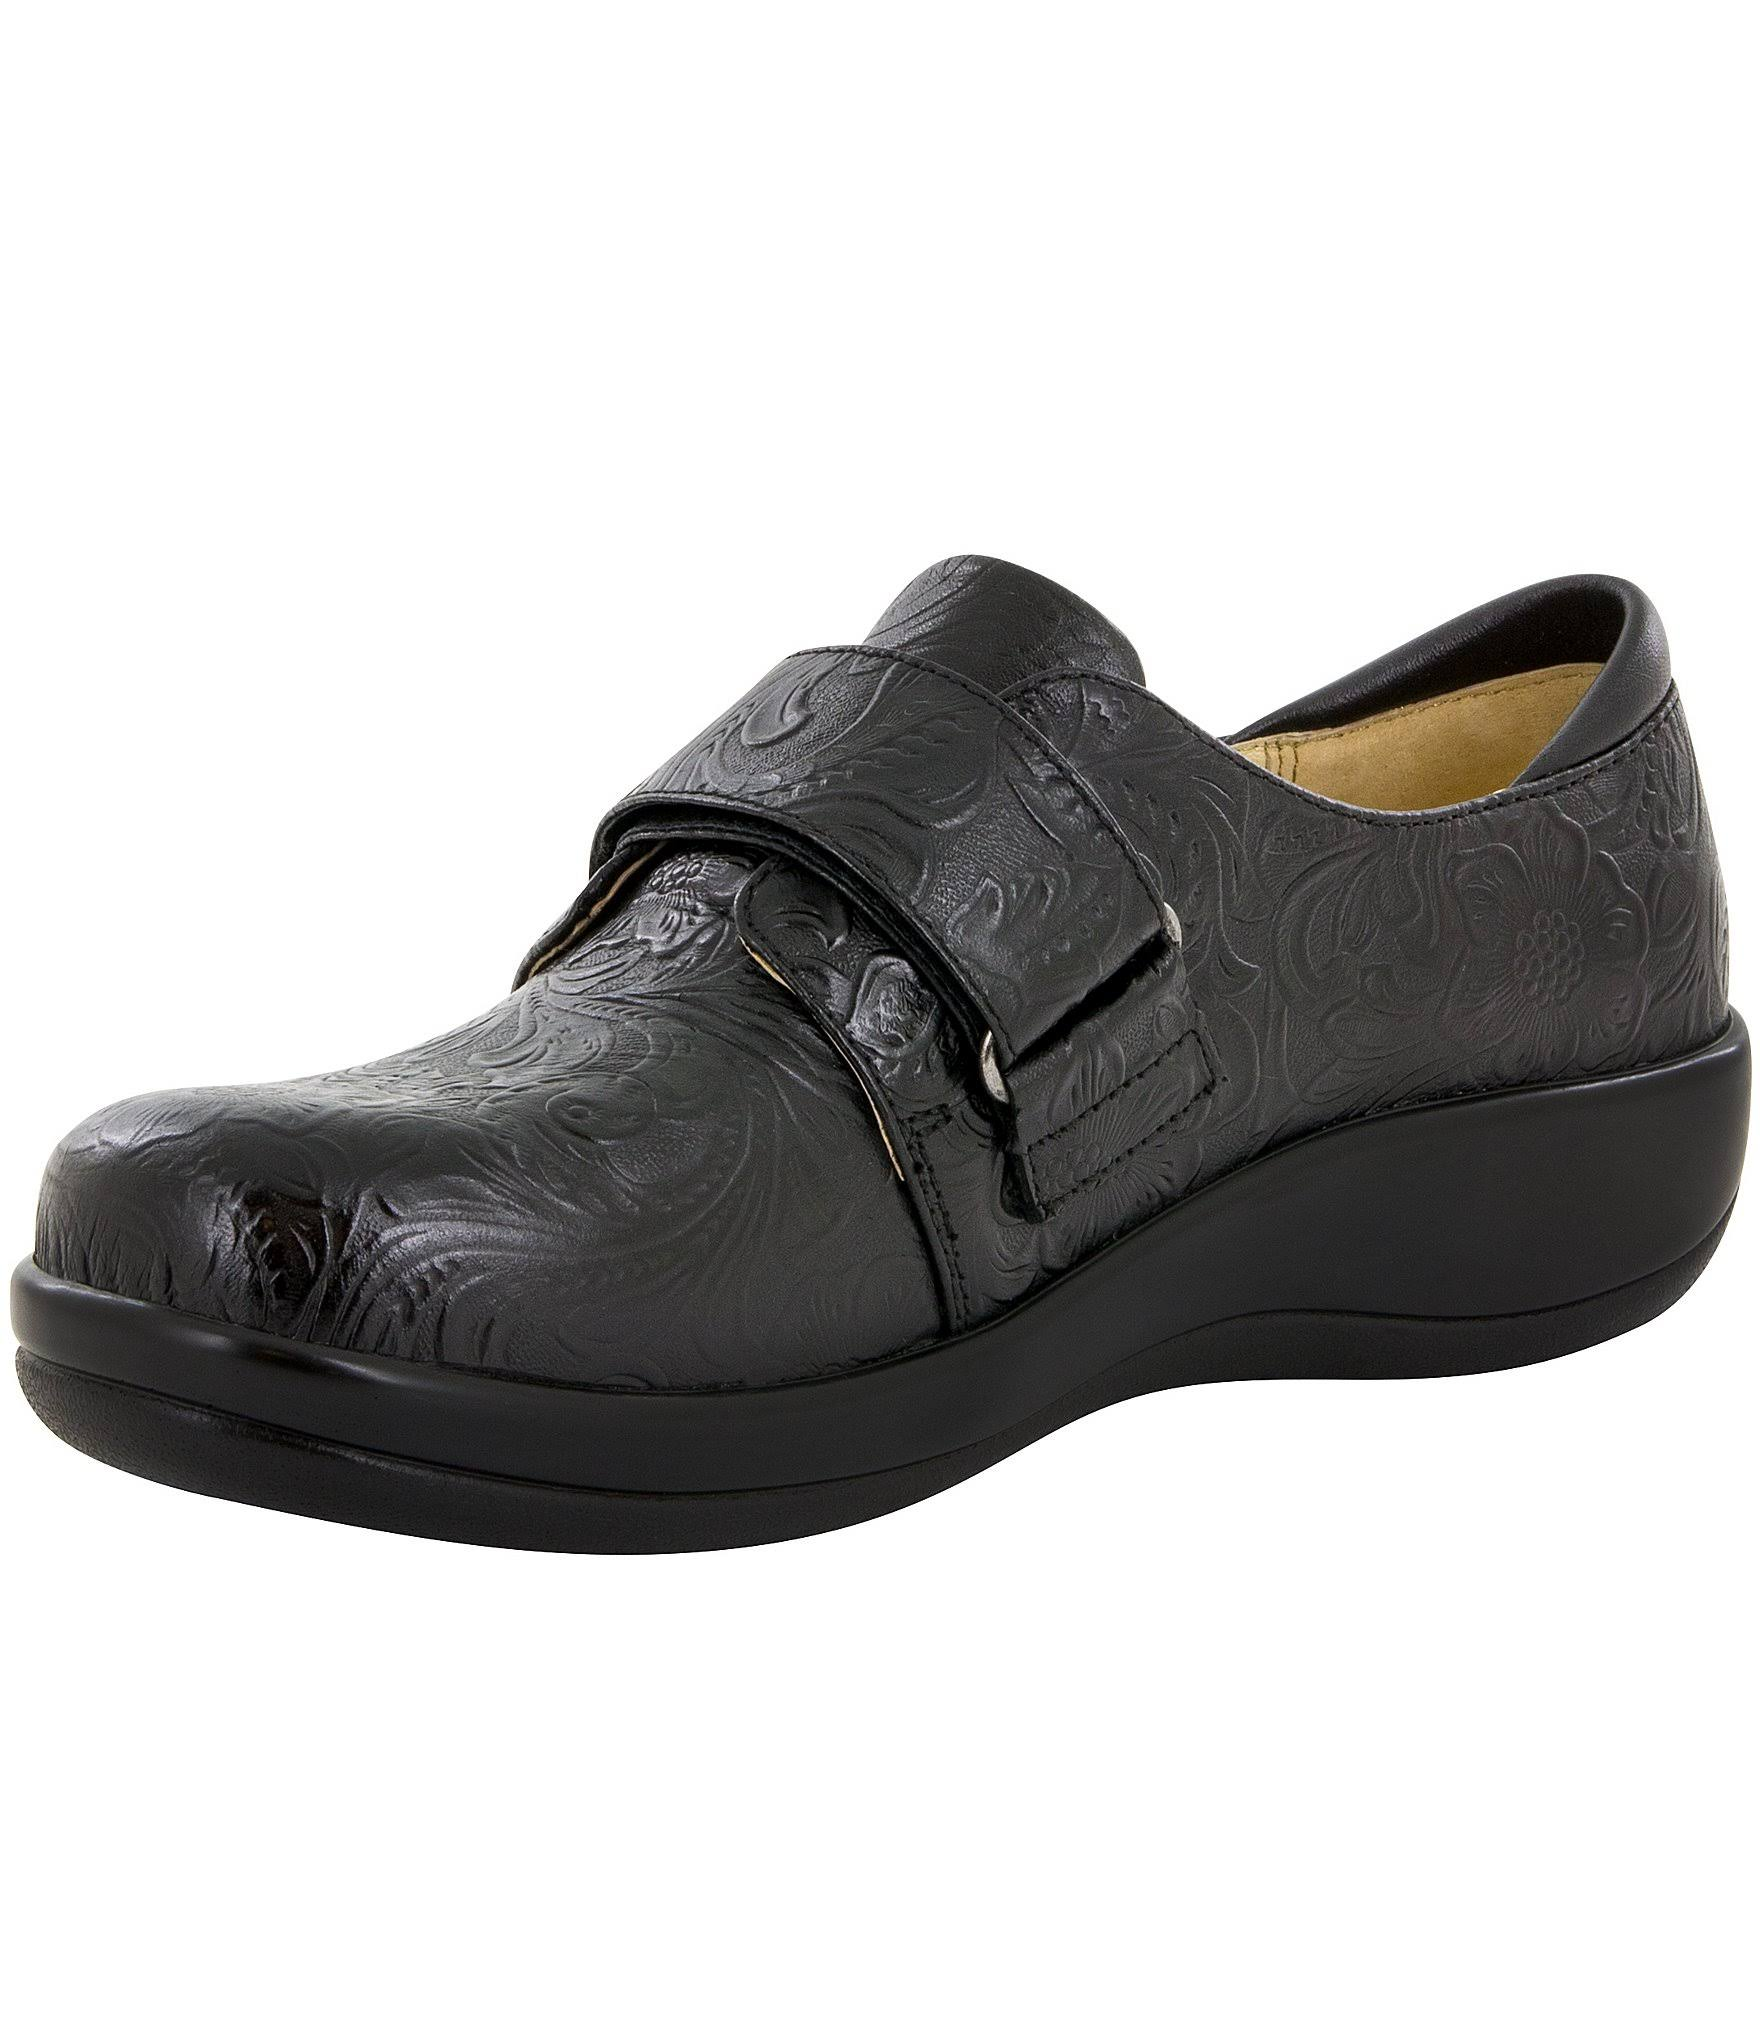 Tar Alegria Joleen 39Nero Tooled Shoe eQrxCdBoW